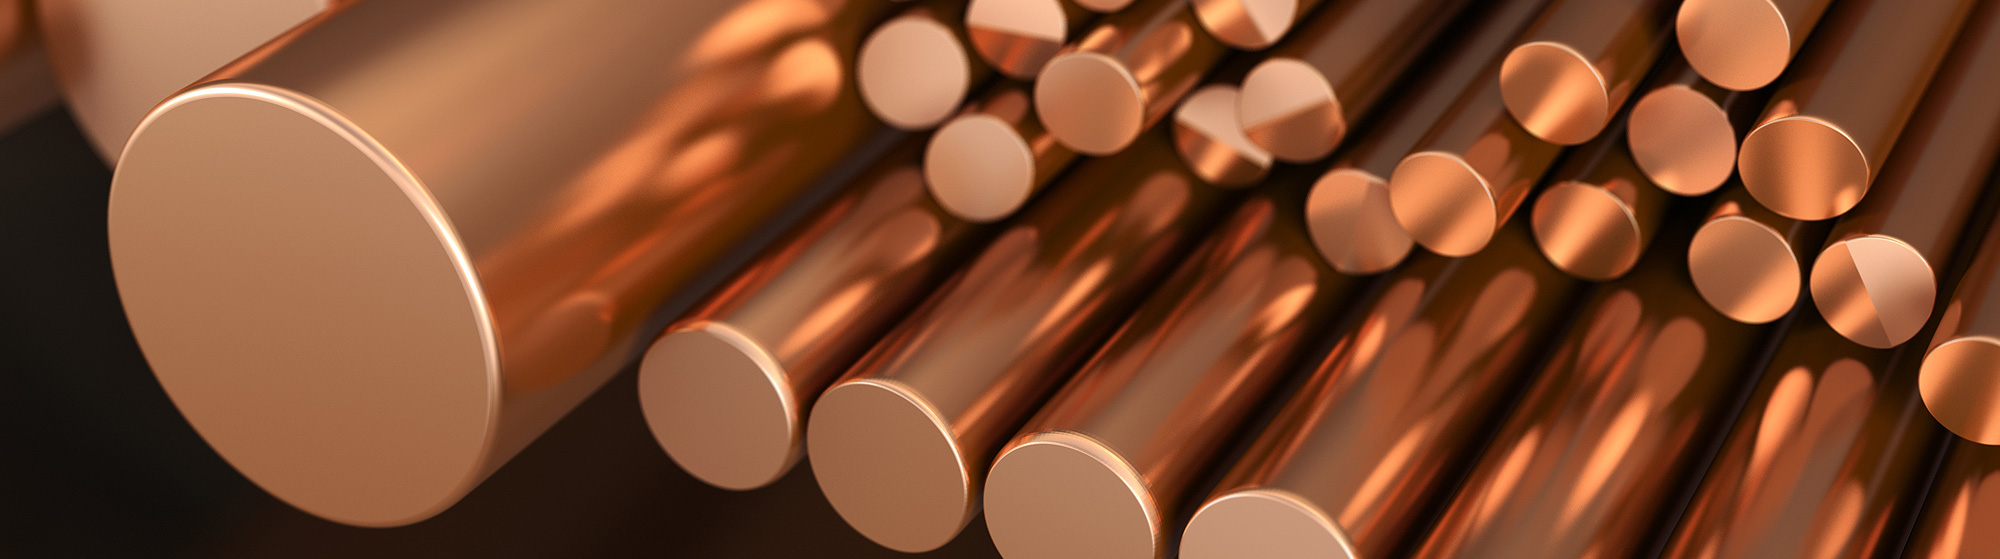 Copper Wave Analysis – 10 July, 2020